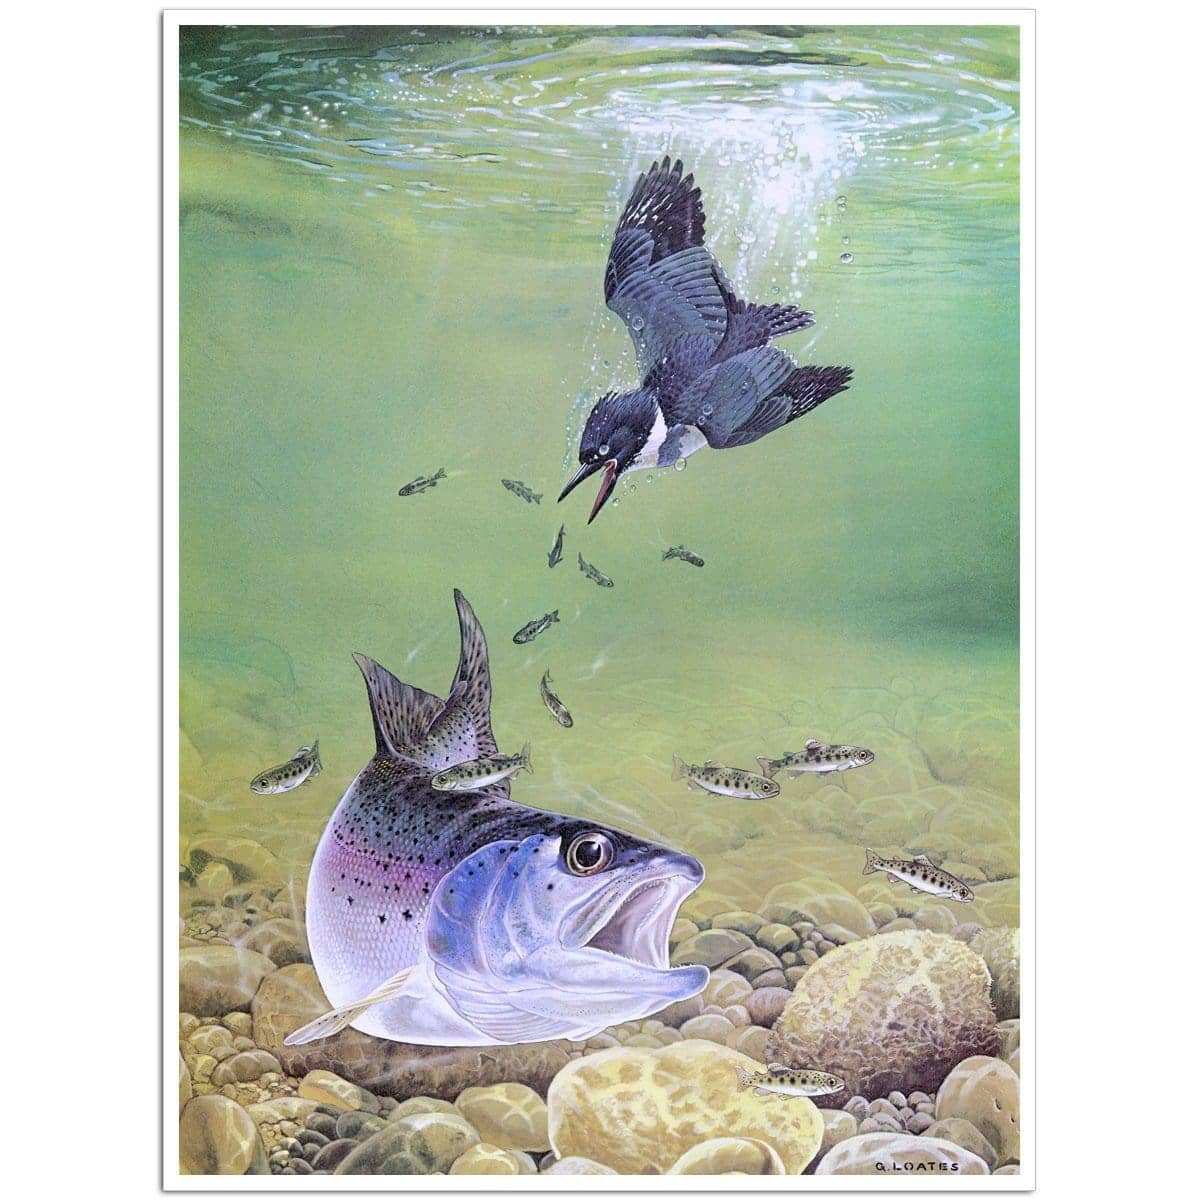 Kingfisher And Rainbow Trout - Art Print by Glen Loates from the Glen Loates Store